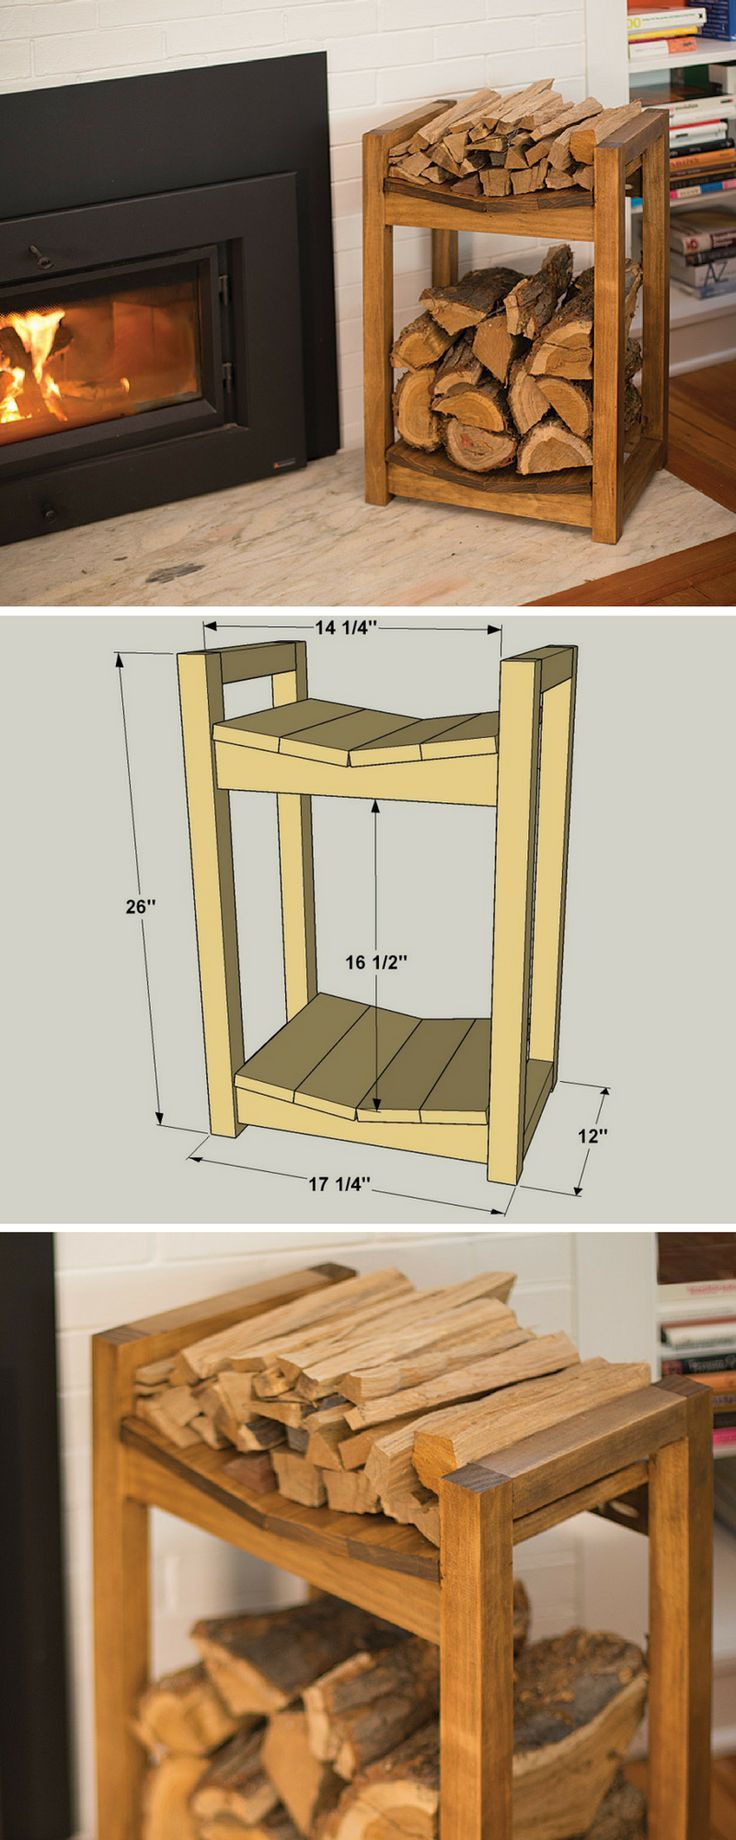 Keep your fireplace stocked with this firewood storage rack. The lower area holds your fire logs securely, while the upper area is a great place for keeping kindling. You can build one in just a couple of hours using four boards, a miter saw (or circular saw), a jigsaw, a drill, and a Kreg Jig.